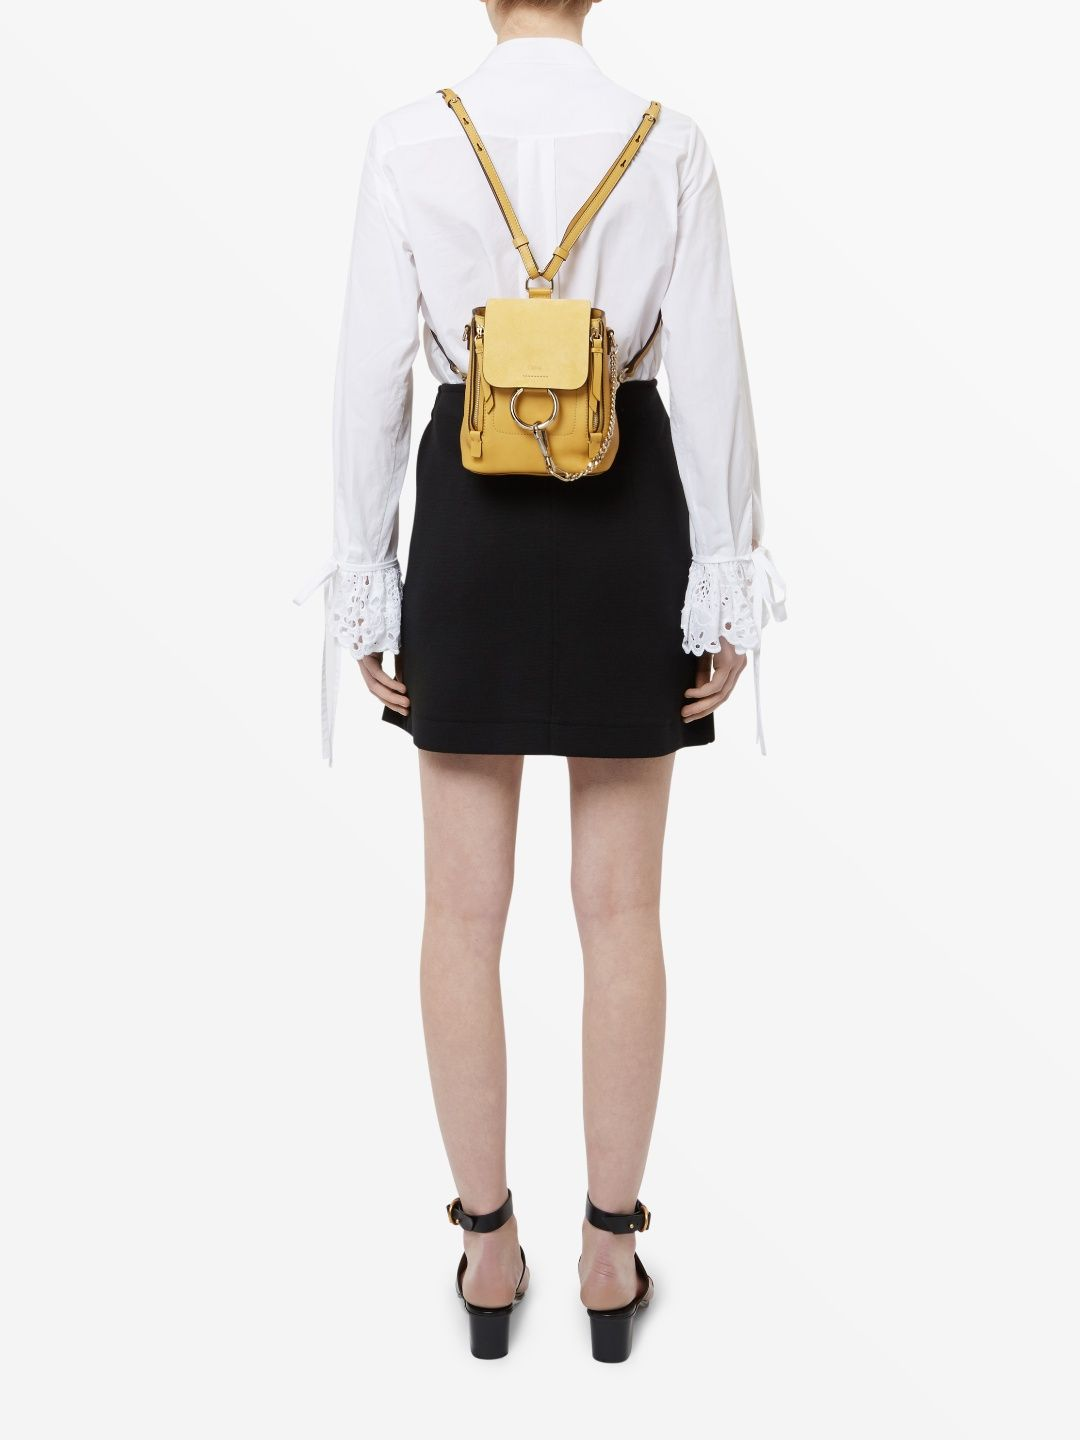 Chloé Suede And Leather Mini Faye Backpack Image 4 | 2017ss ...